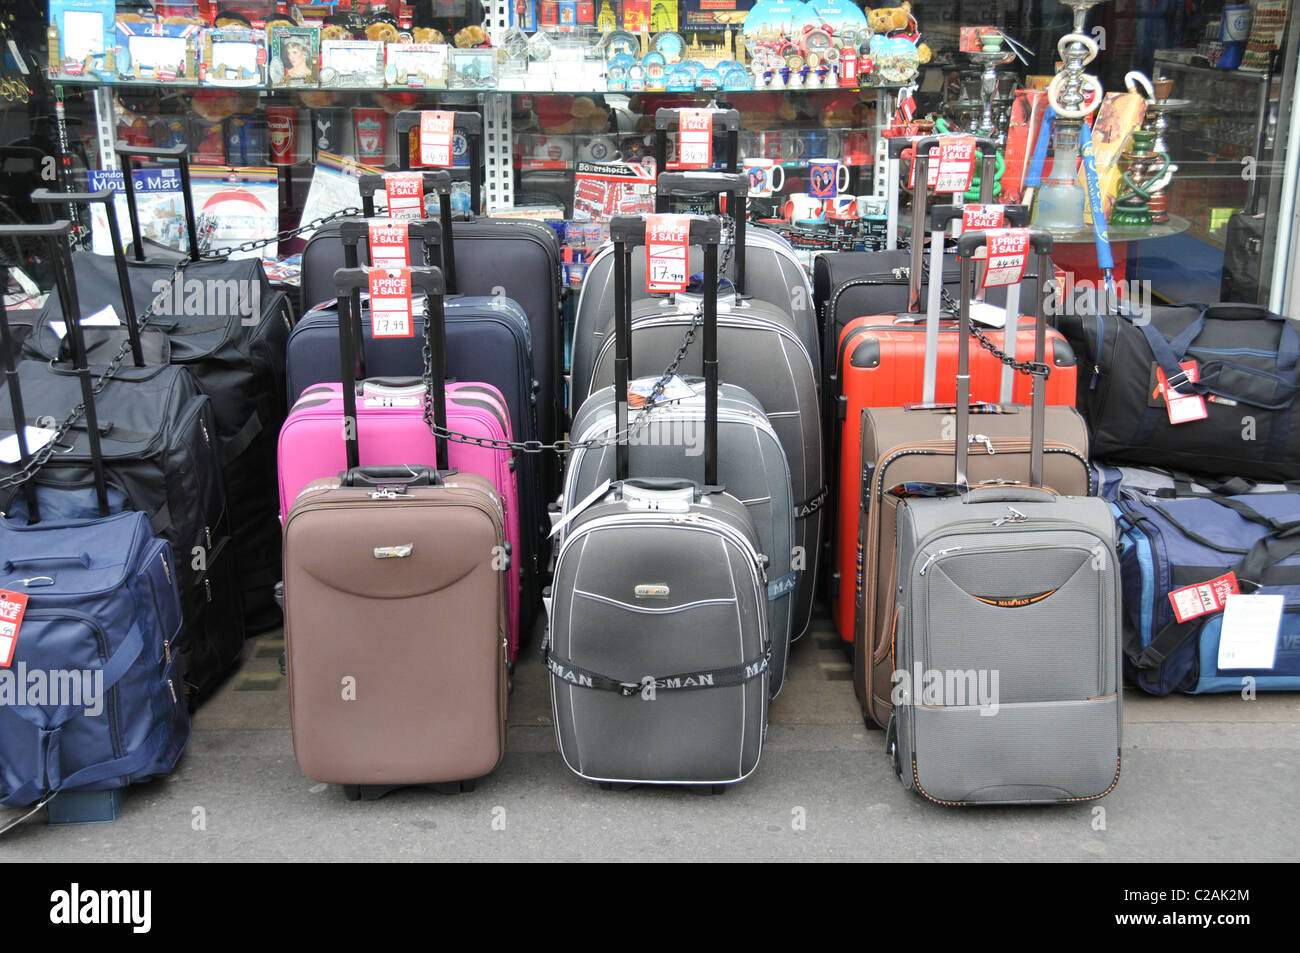 Suitcases luggage shop travel cases display sale on sale bargains ...